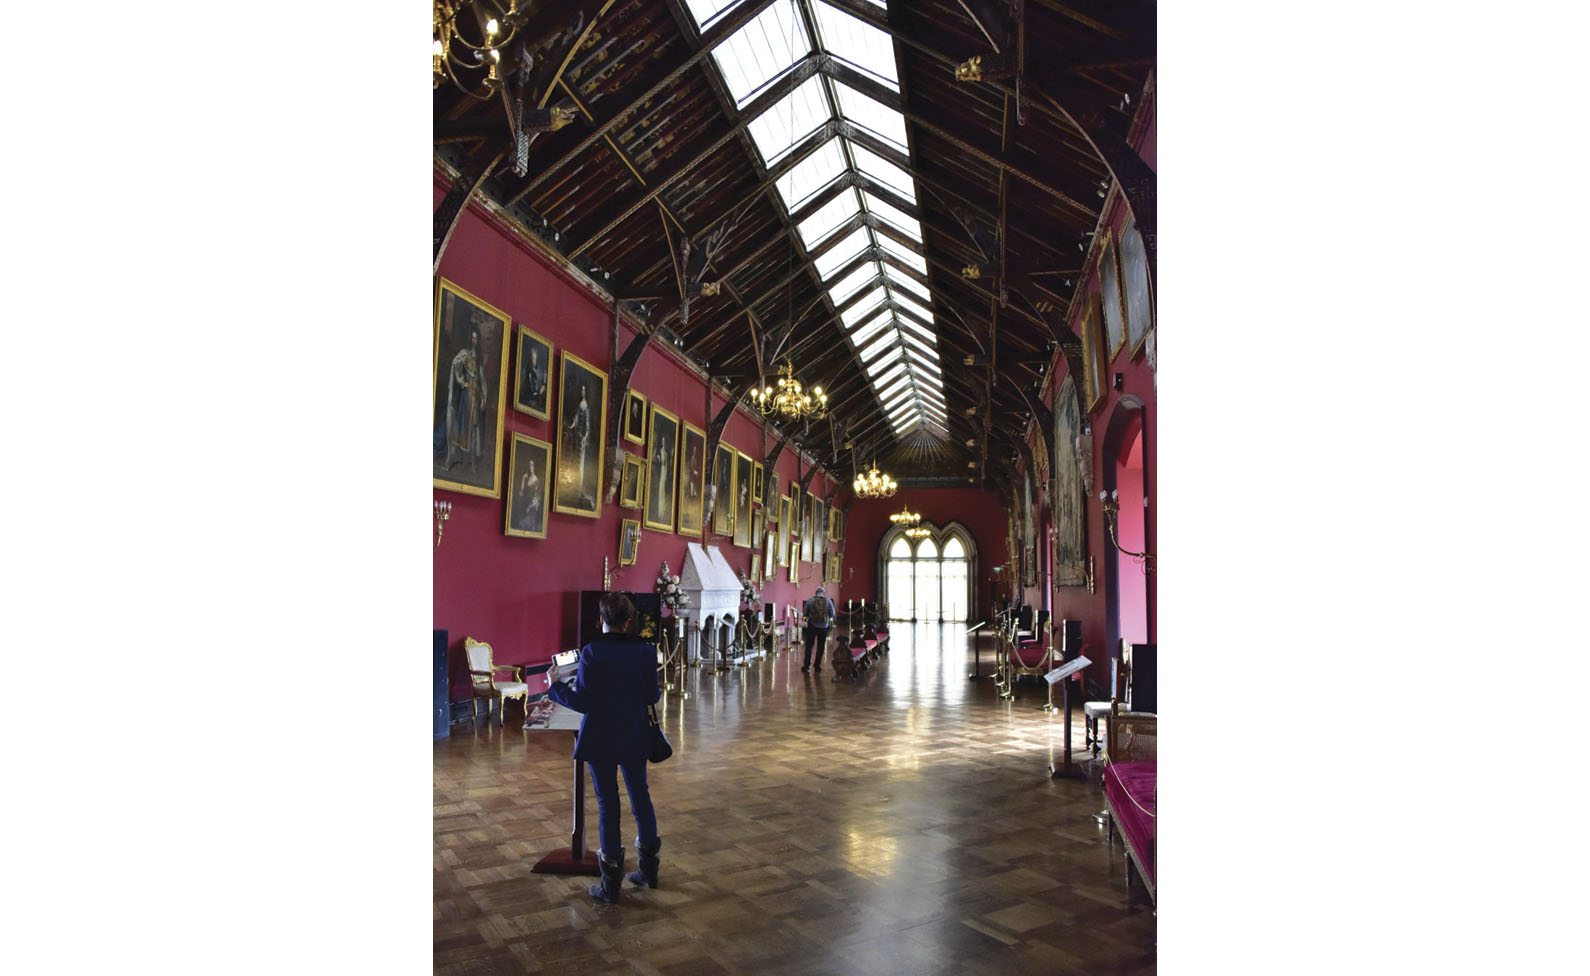 The portrait hall at Kilkenny Castle, some of which dates to the 16th century.